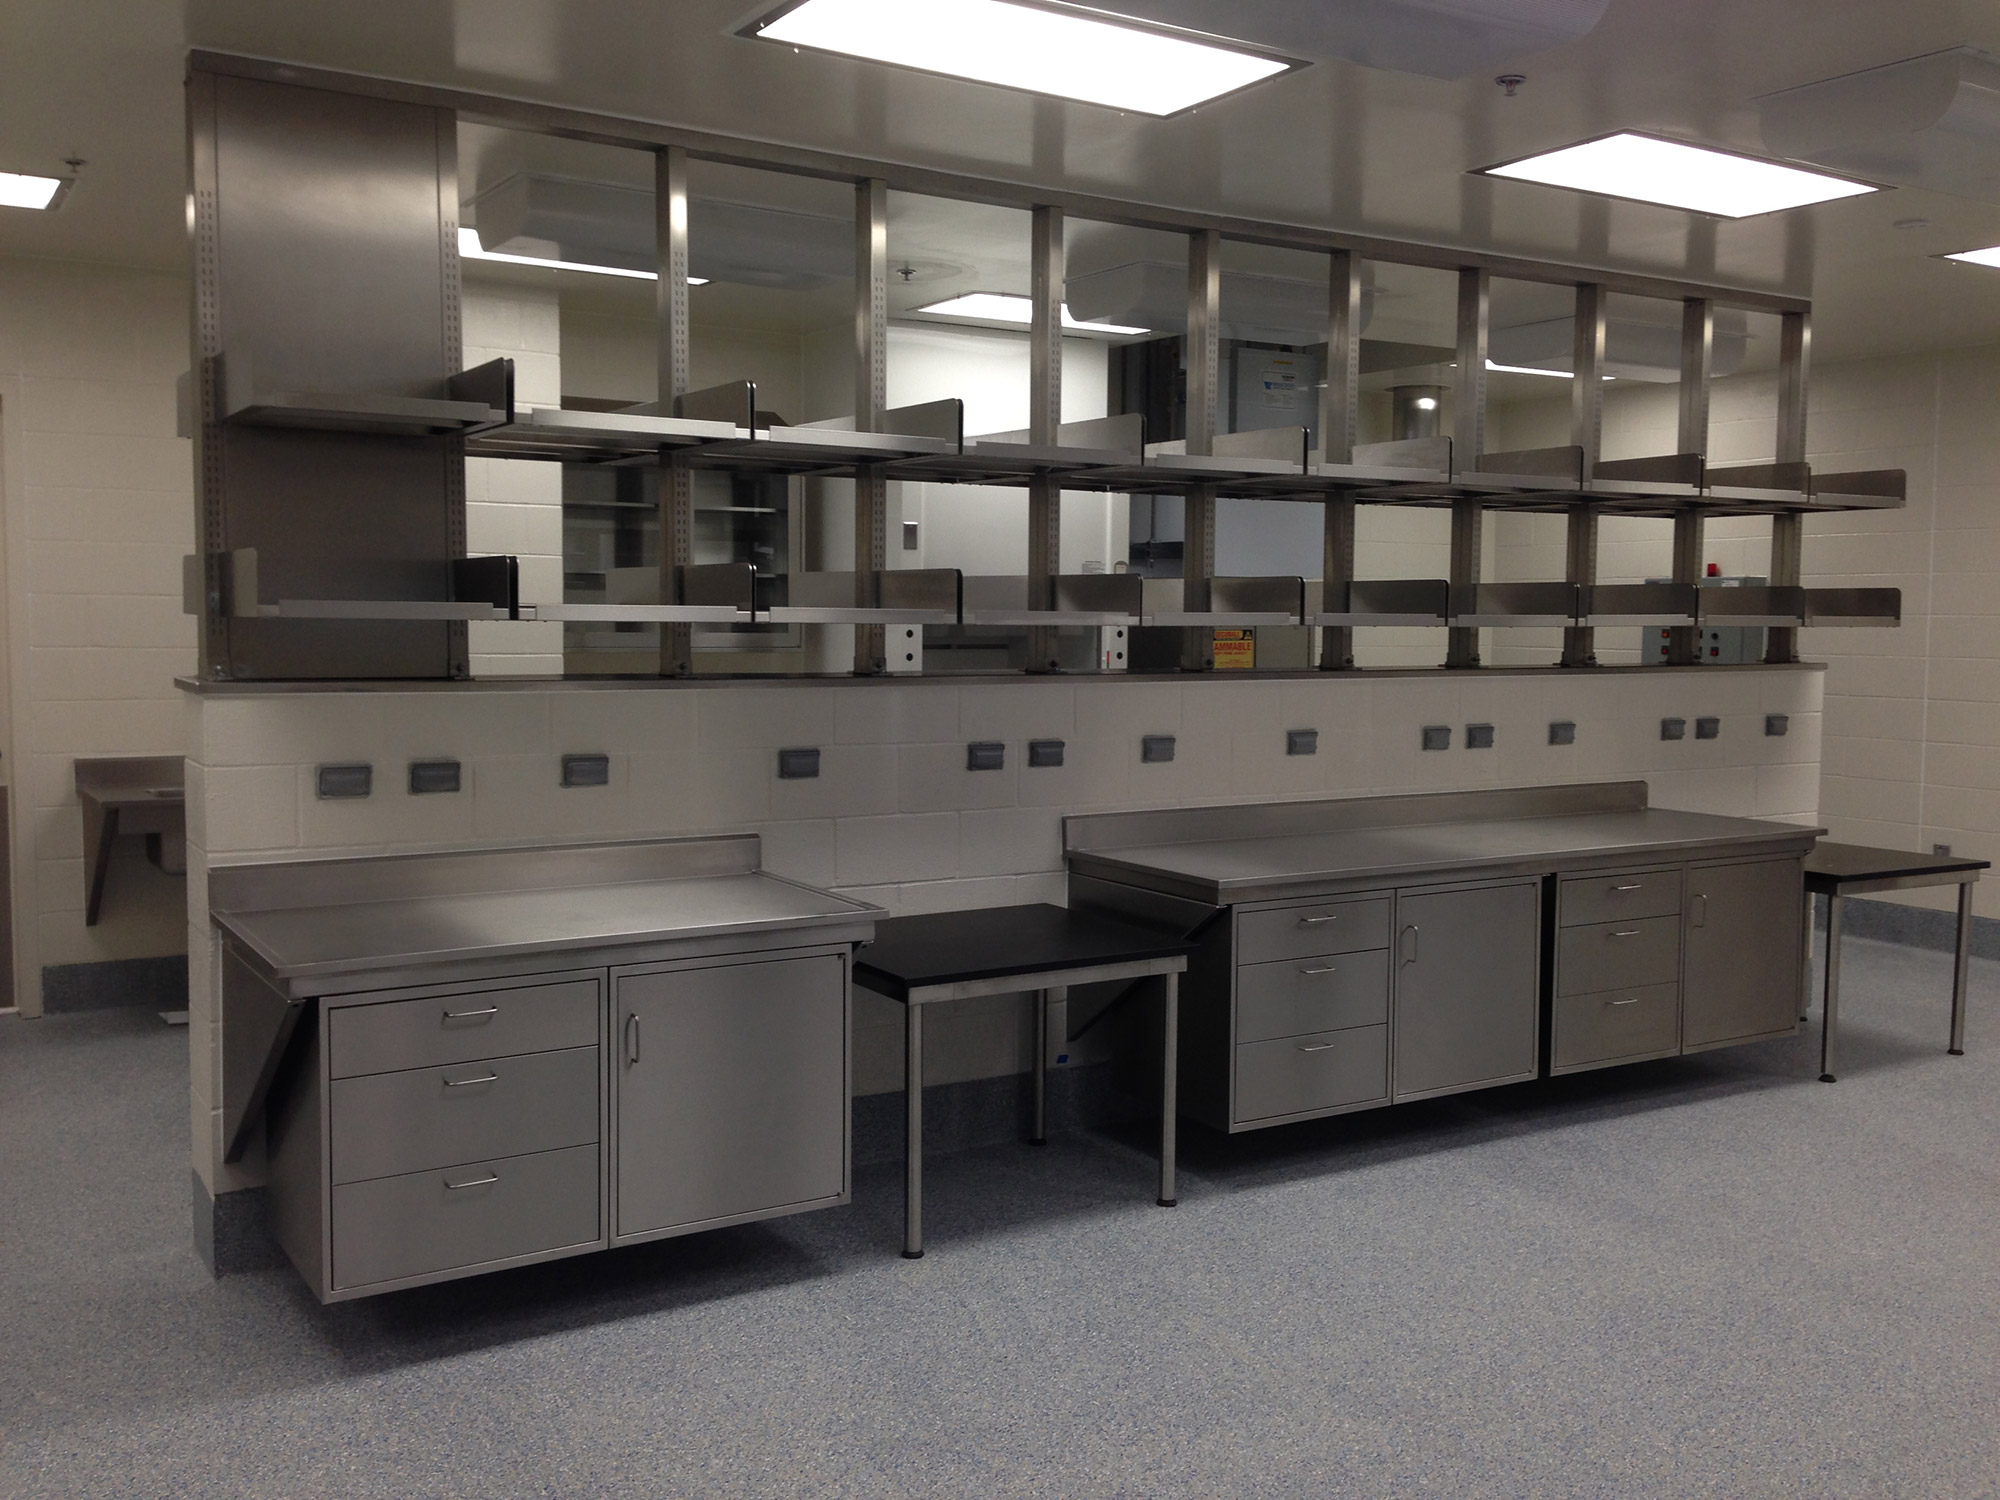 Casework - Inset Stainless Steel